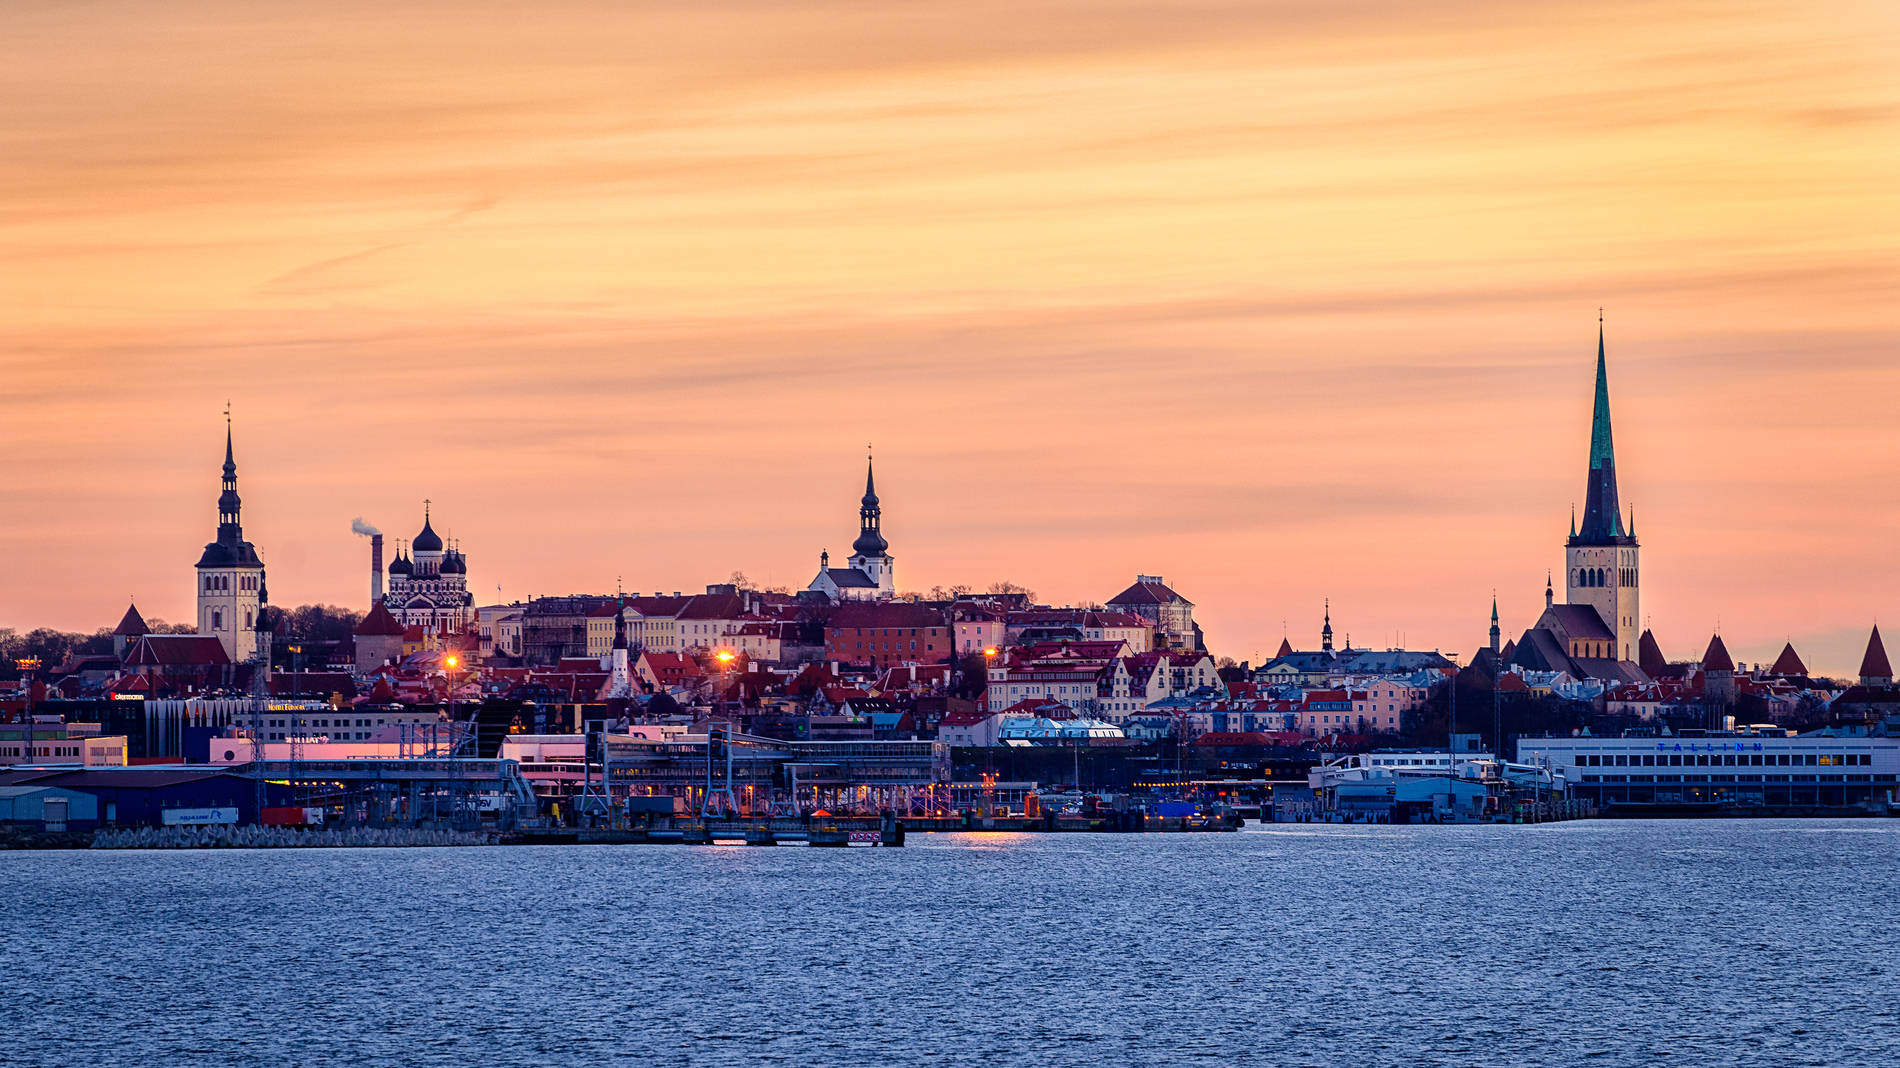 View of the Old Town silhouette during sunset in Tallinn, Estonia.